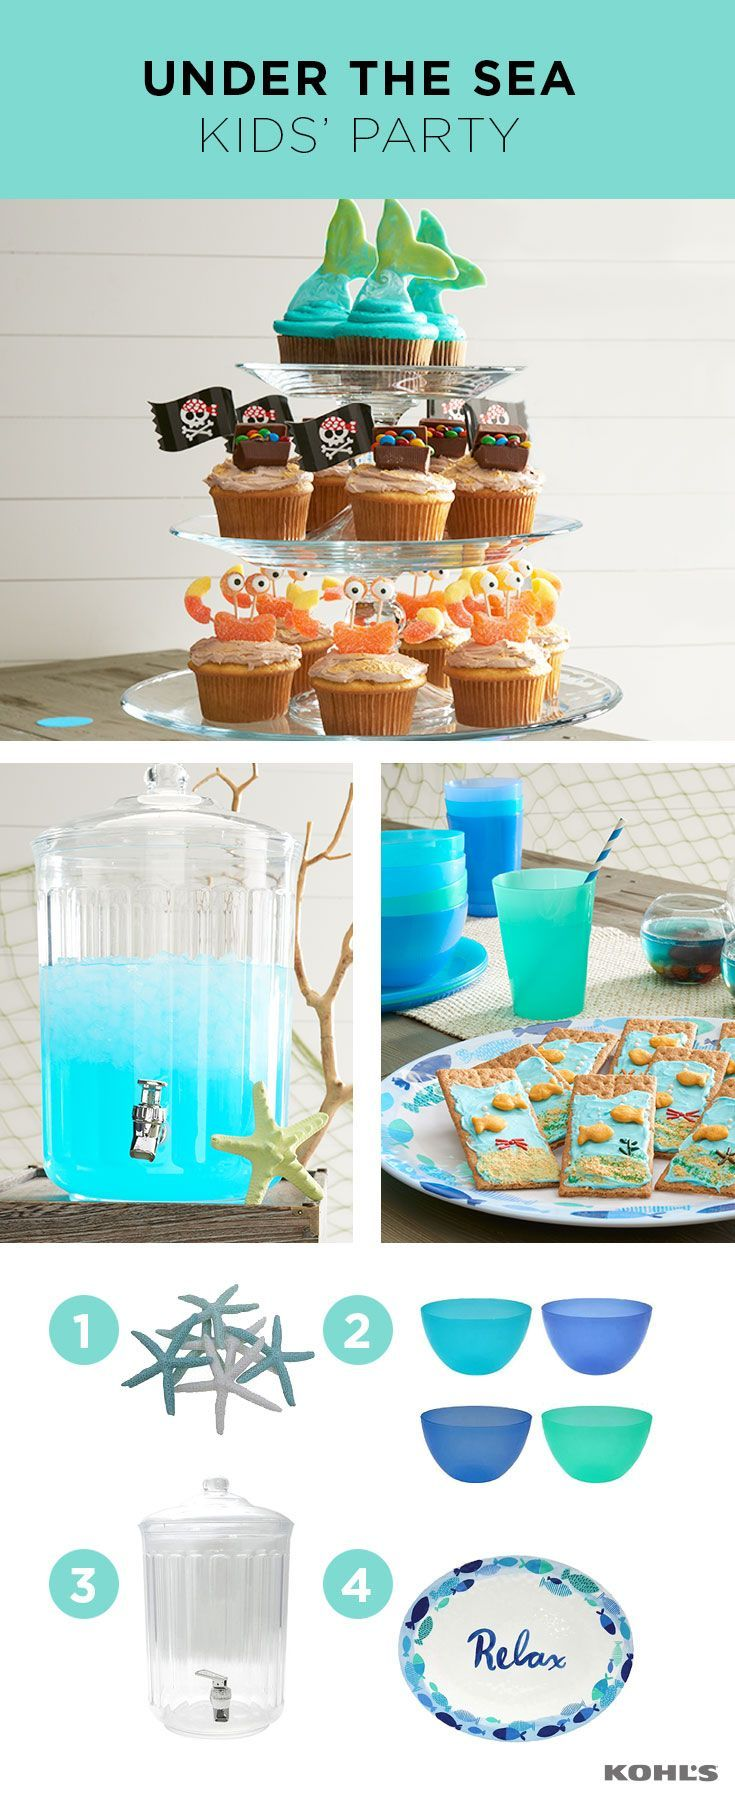 Ahoy, pirates and mermaids! The next big thing for kids' parties is here and we argh loving it. Throw an under-the-sea-themed party for your little one's next celebration with an ocean-inspired color scheme, beachy (and non-breakable kid-friendly) accessories and lots of yummy seawater (don't tell, but it's just blue punch). Celebrate summer with Kohl's.